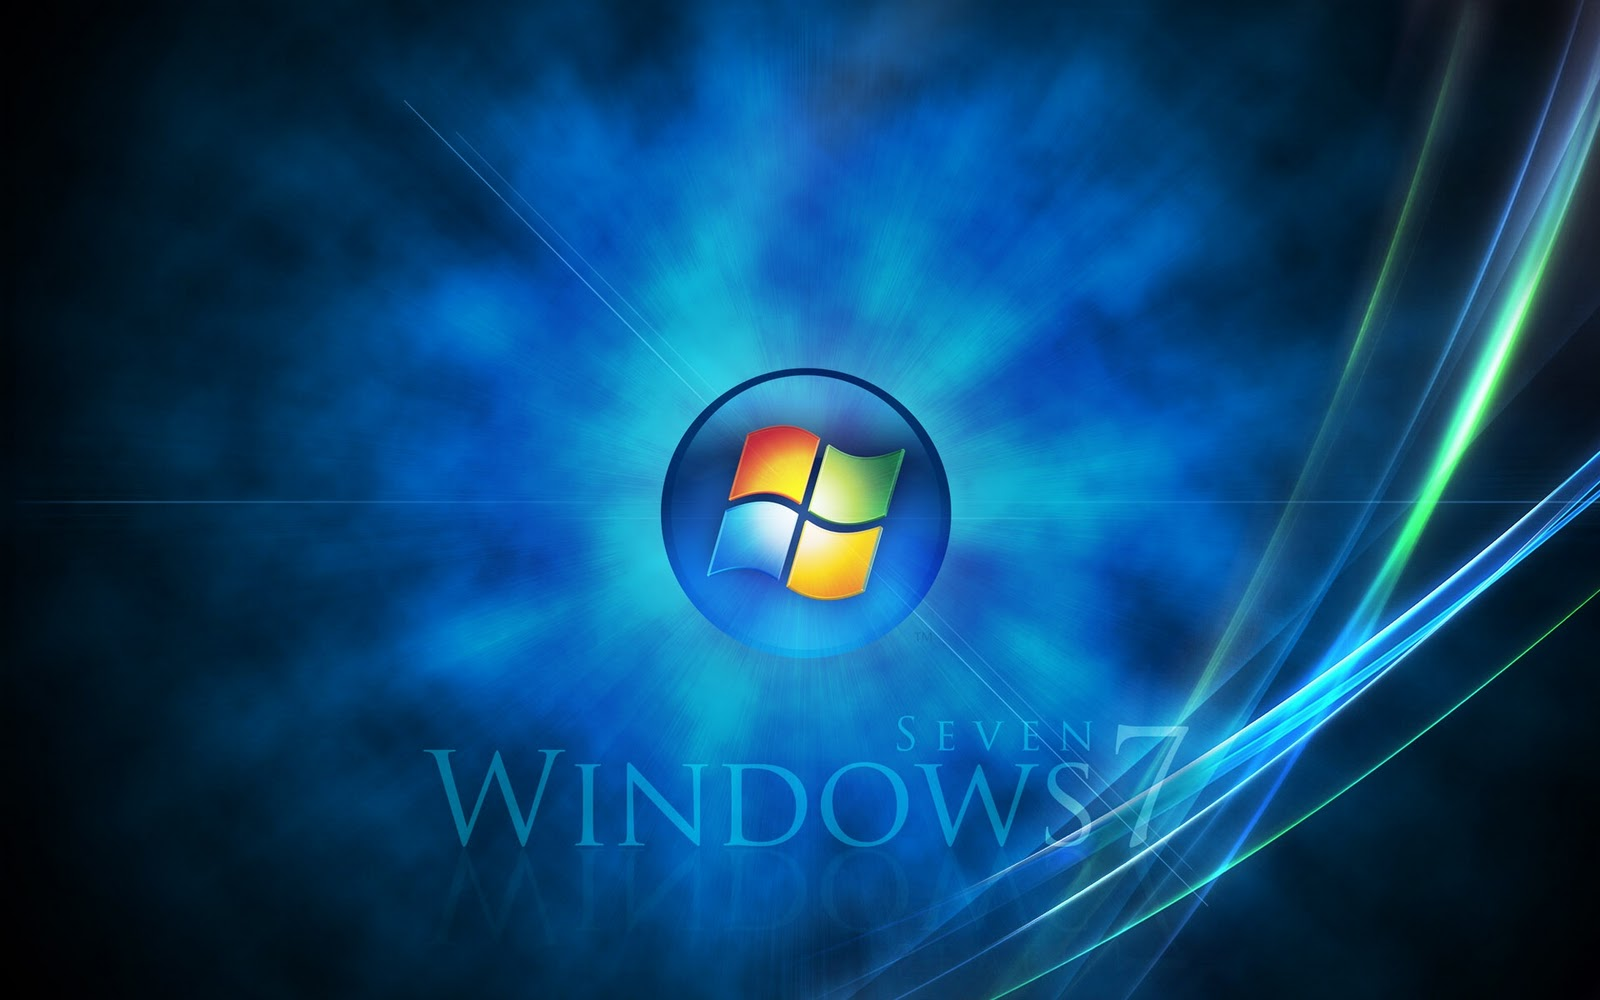 Windows 7 achtergronden hd wallpapers for Windows 8 bureaublad